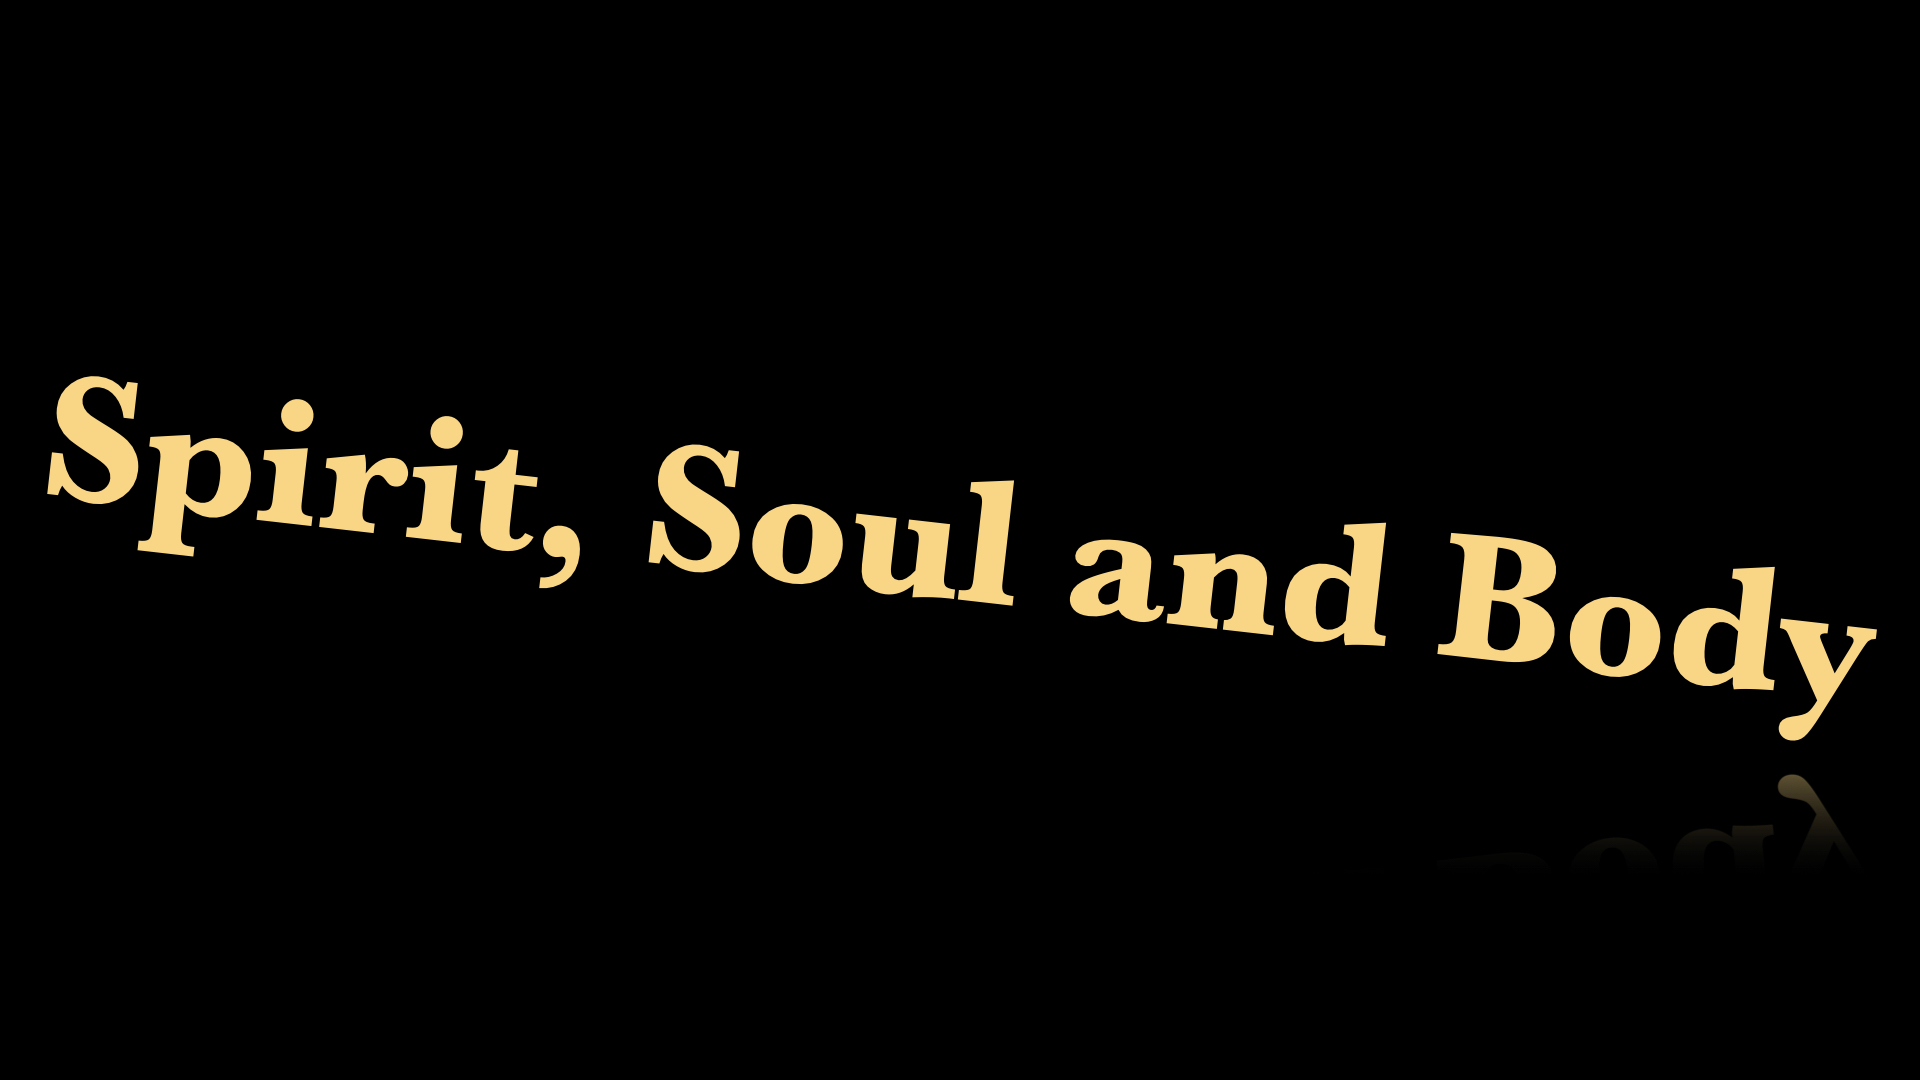 SpiritSoul and Body 5152019 50635 PM